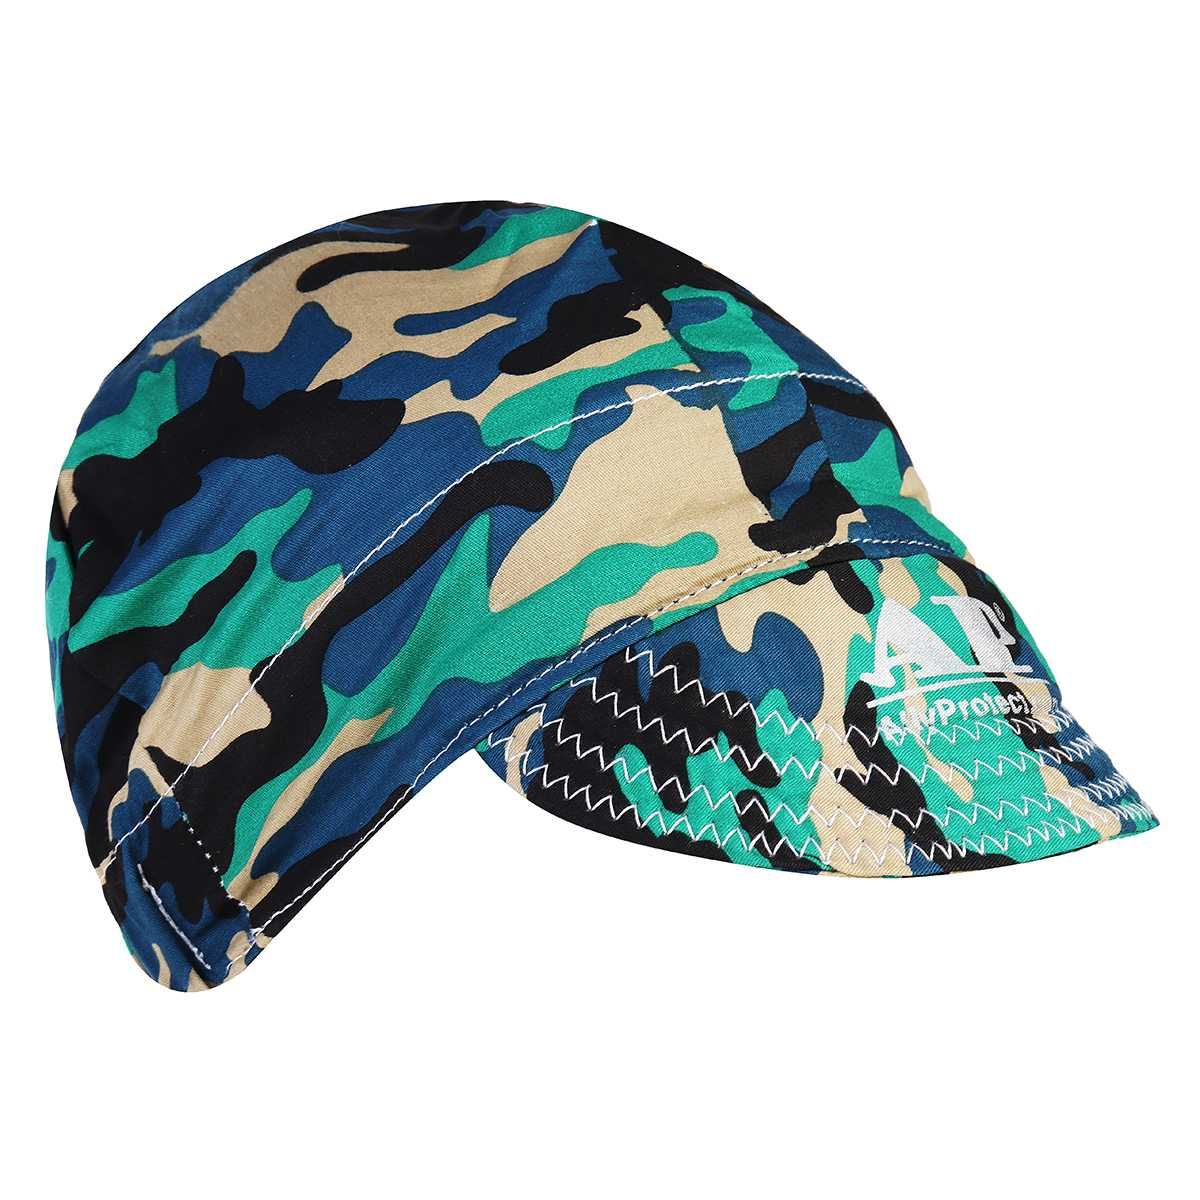 Welding Helmets Comfortable Adjustable Elastic Sweat Absorption Cotton Army Camouflage Safety Protective Welder Hat Cap